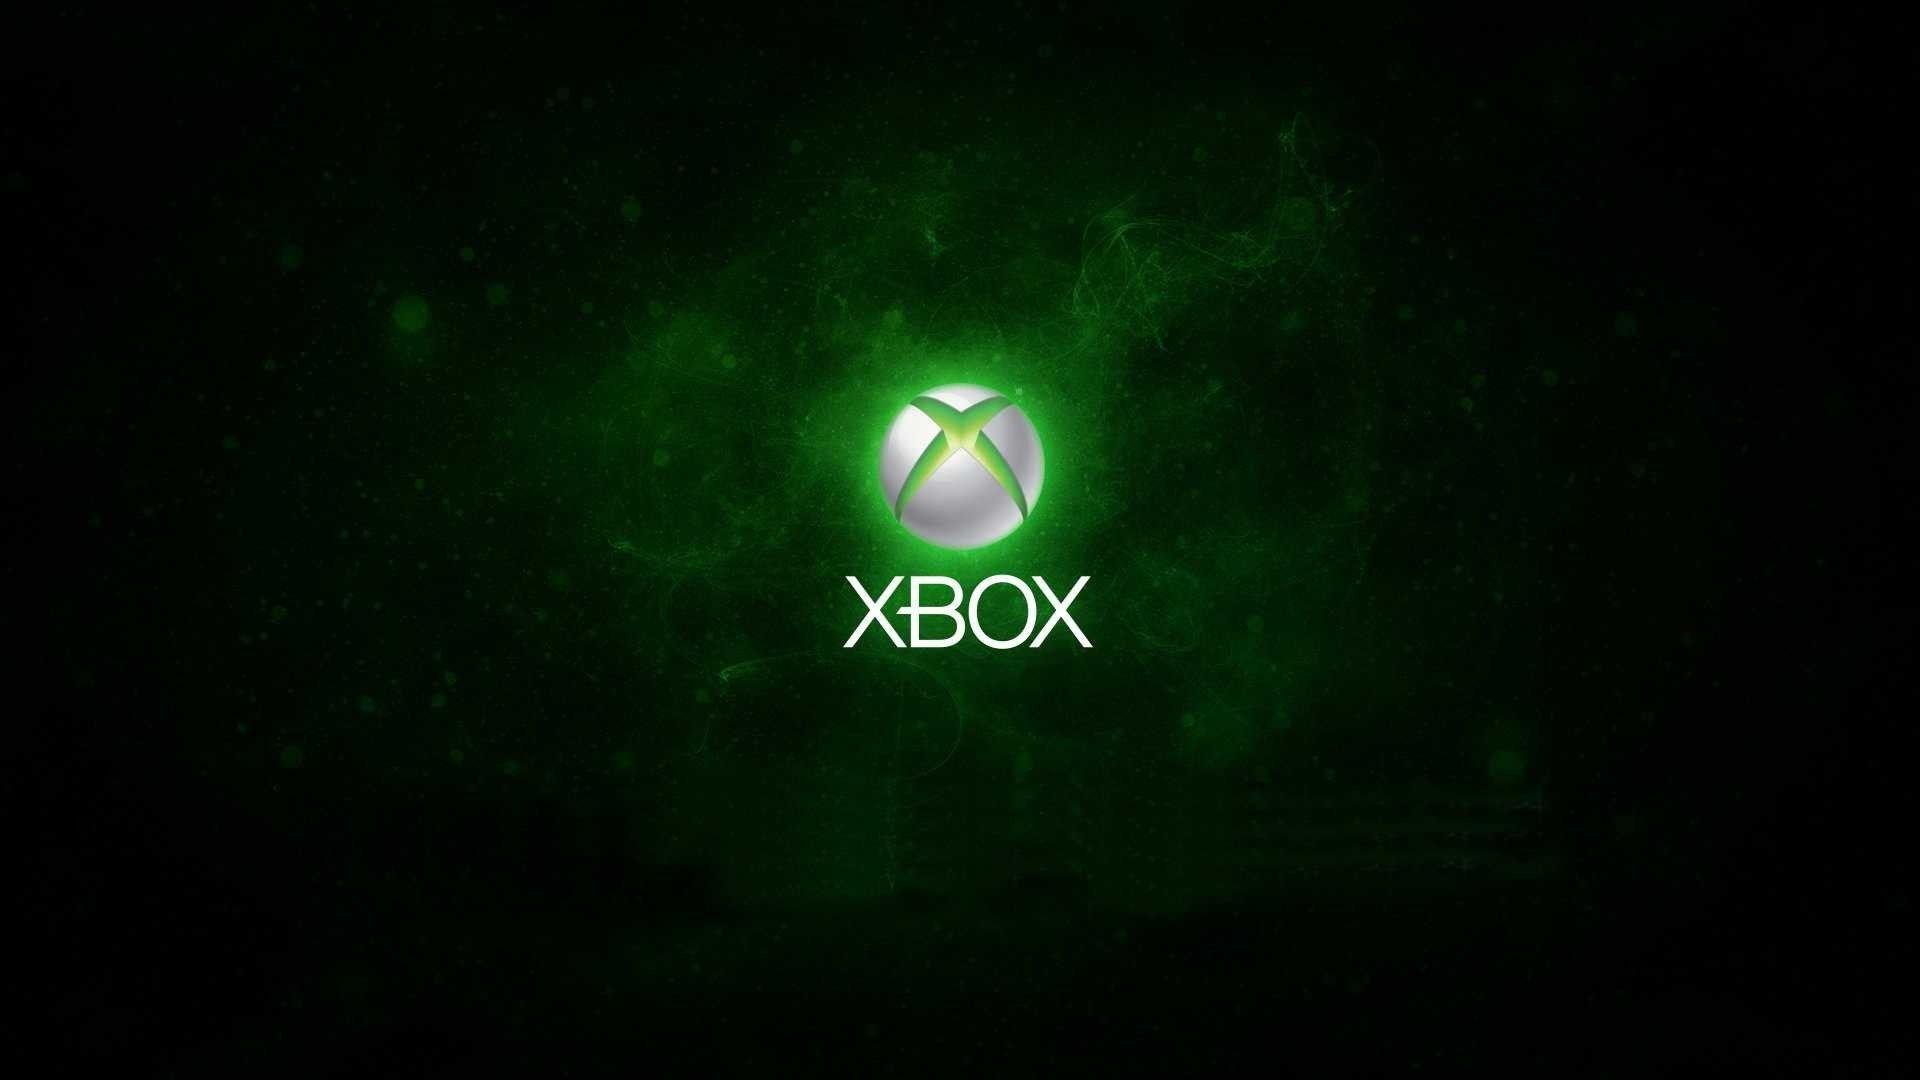 Cool Xbox Wallpapers On Wallpaperdog